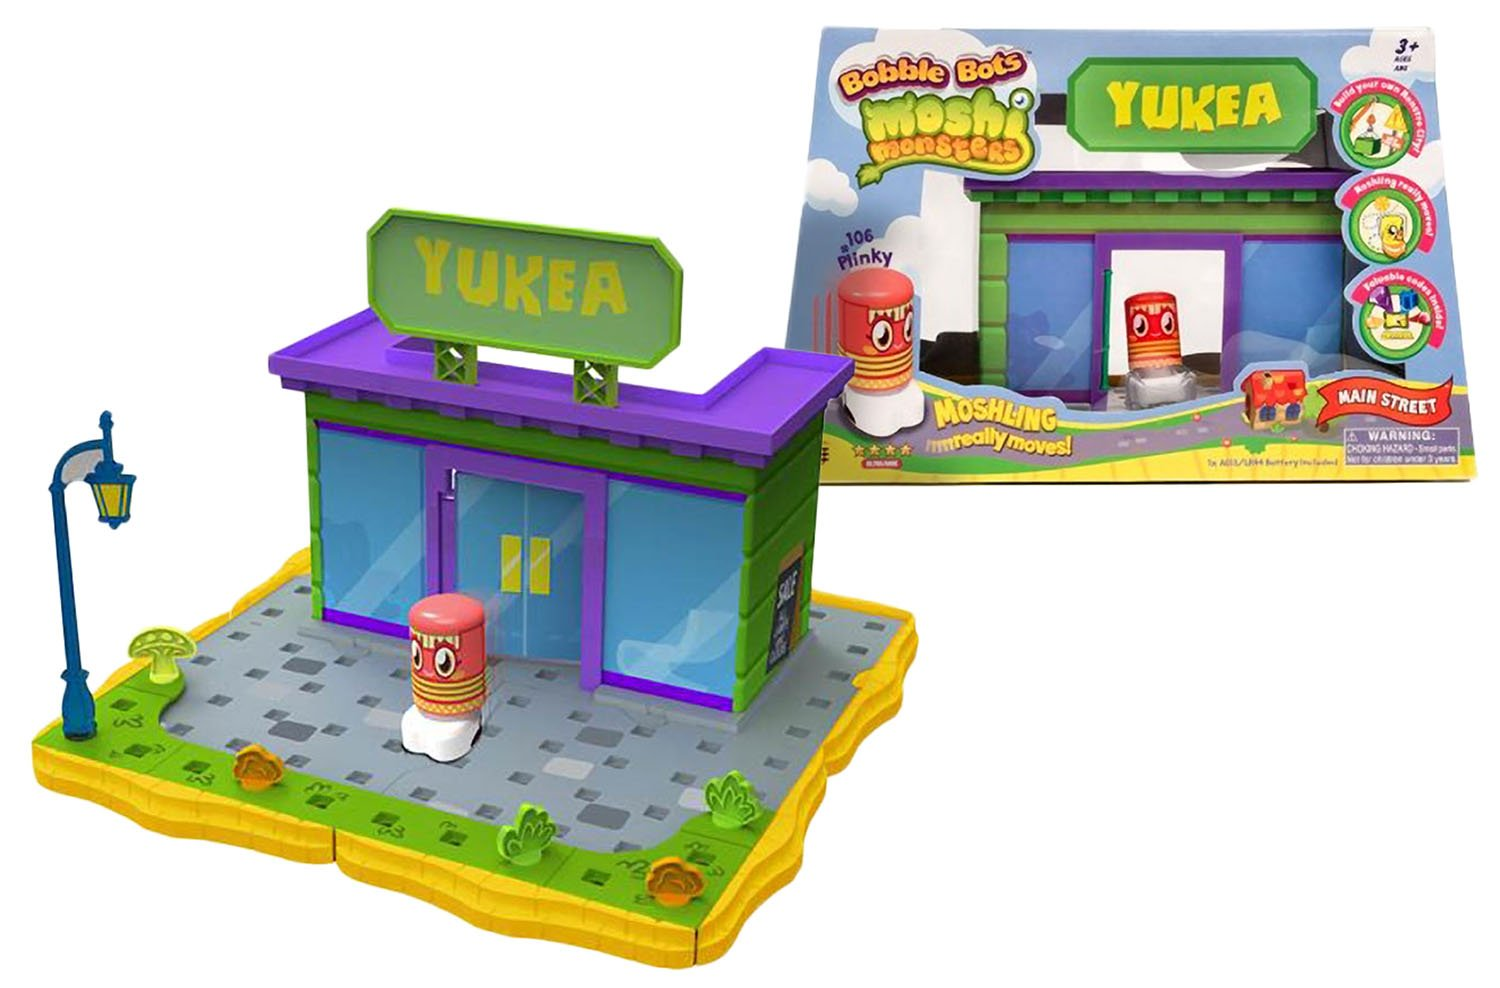 Yukea Store Playset w Plinky #106 moshling Moshi Monsters x Bobble Bots Store Gift Set Series